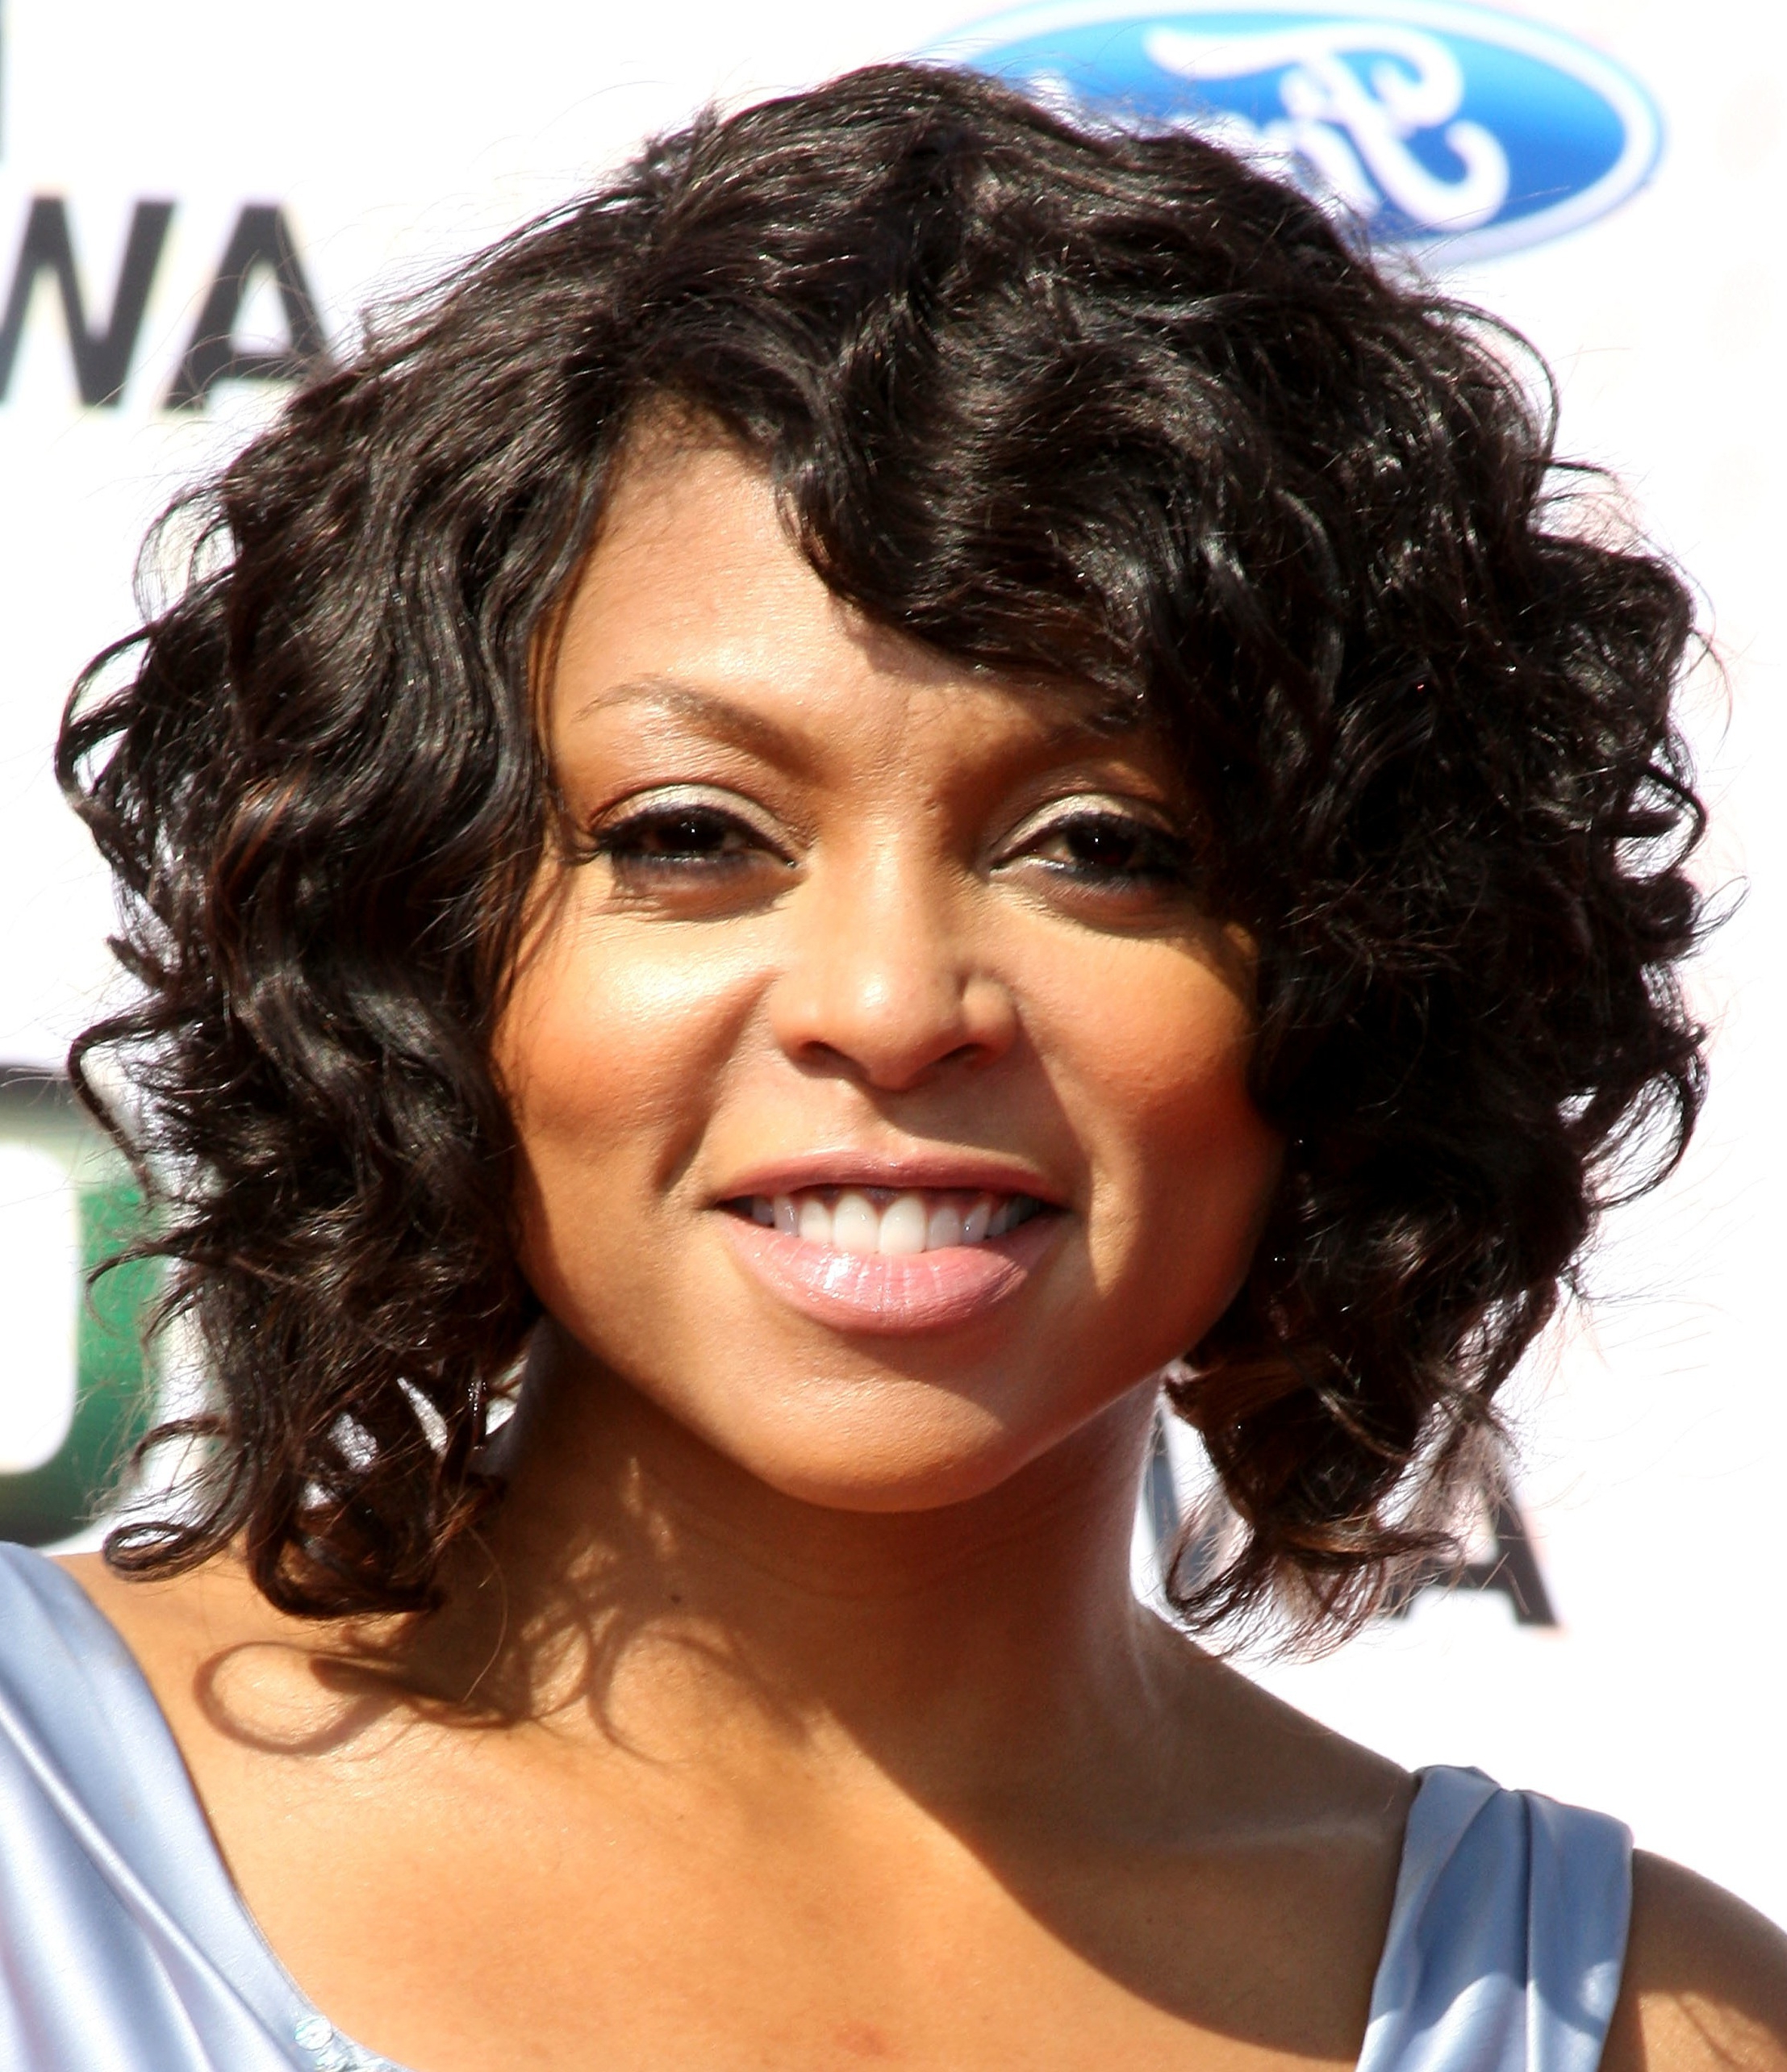 Short Curly Hairstyles For Black Women With Round Faces – Hairstyle In Short Haircuts For Black Women Round Face (View 6 of 25)